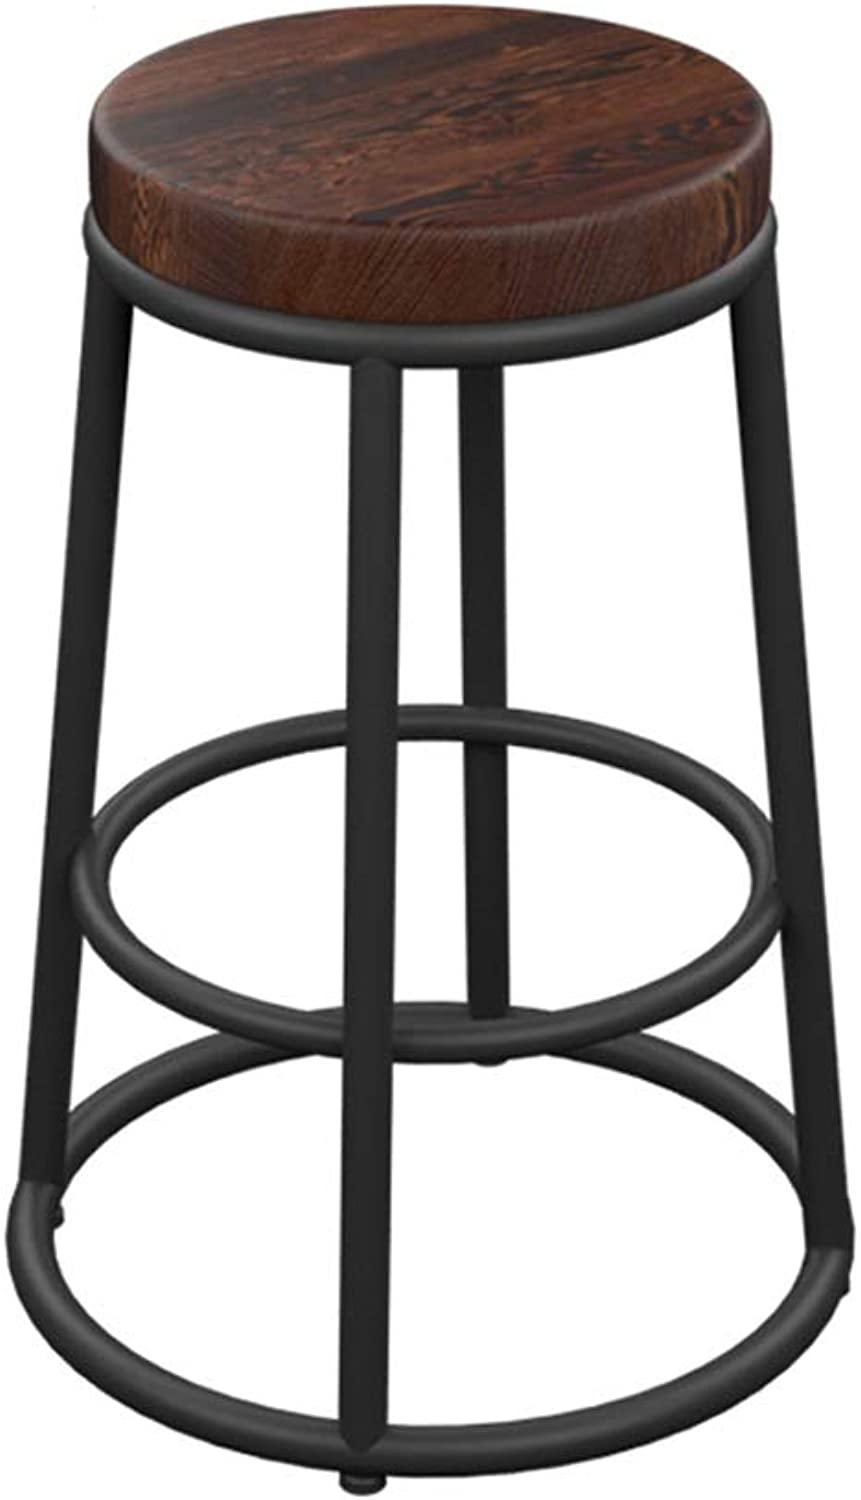 Iron Art Solid Wood Bar Stool Round Retro High Foot Counter Chairs European Style Cafe Metal Seat Cosmetology Stool 0522A (color   Wooden seat, Size   65cm Seat Height)